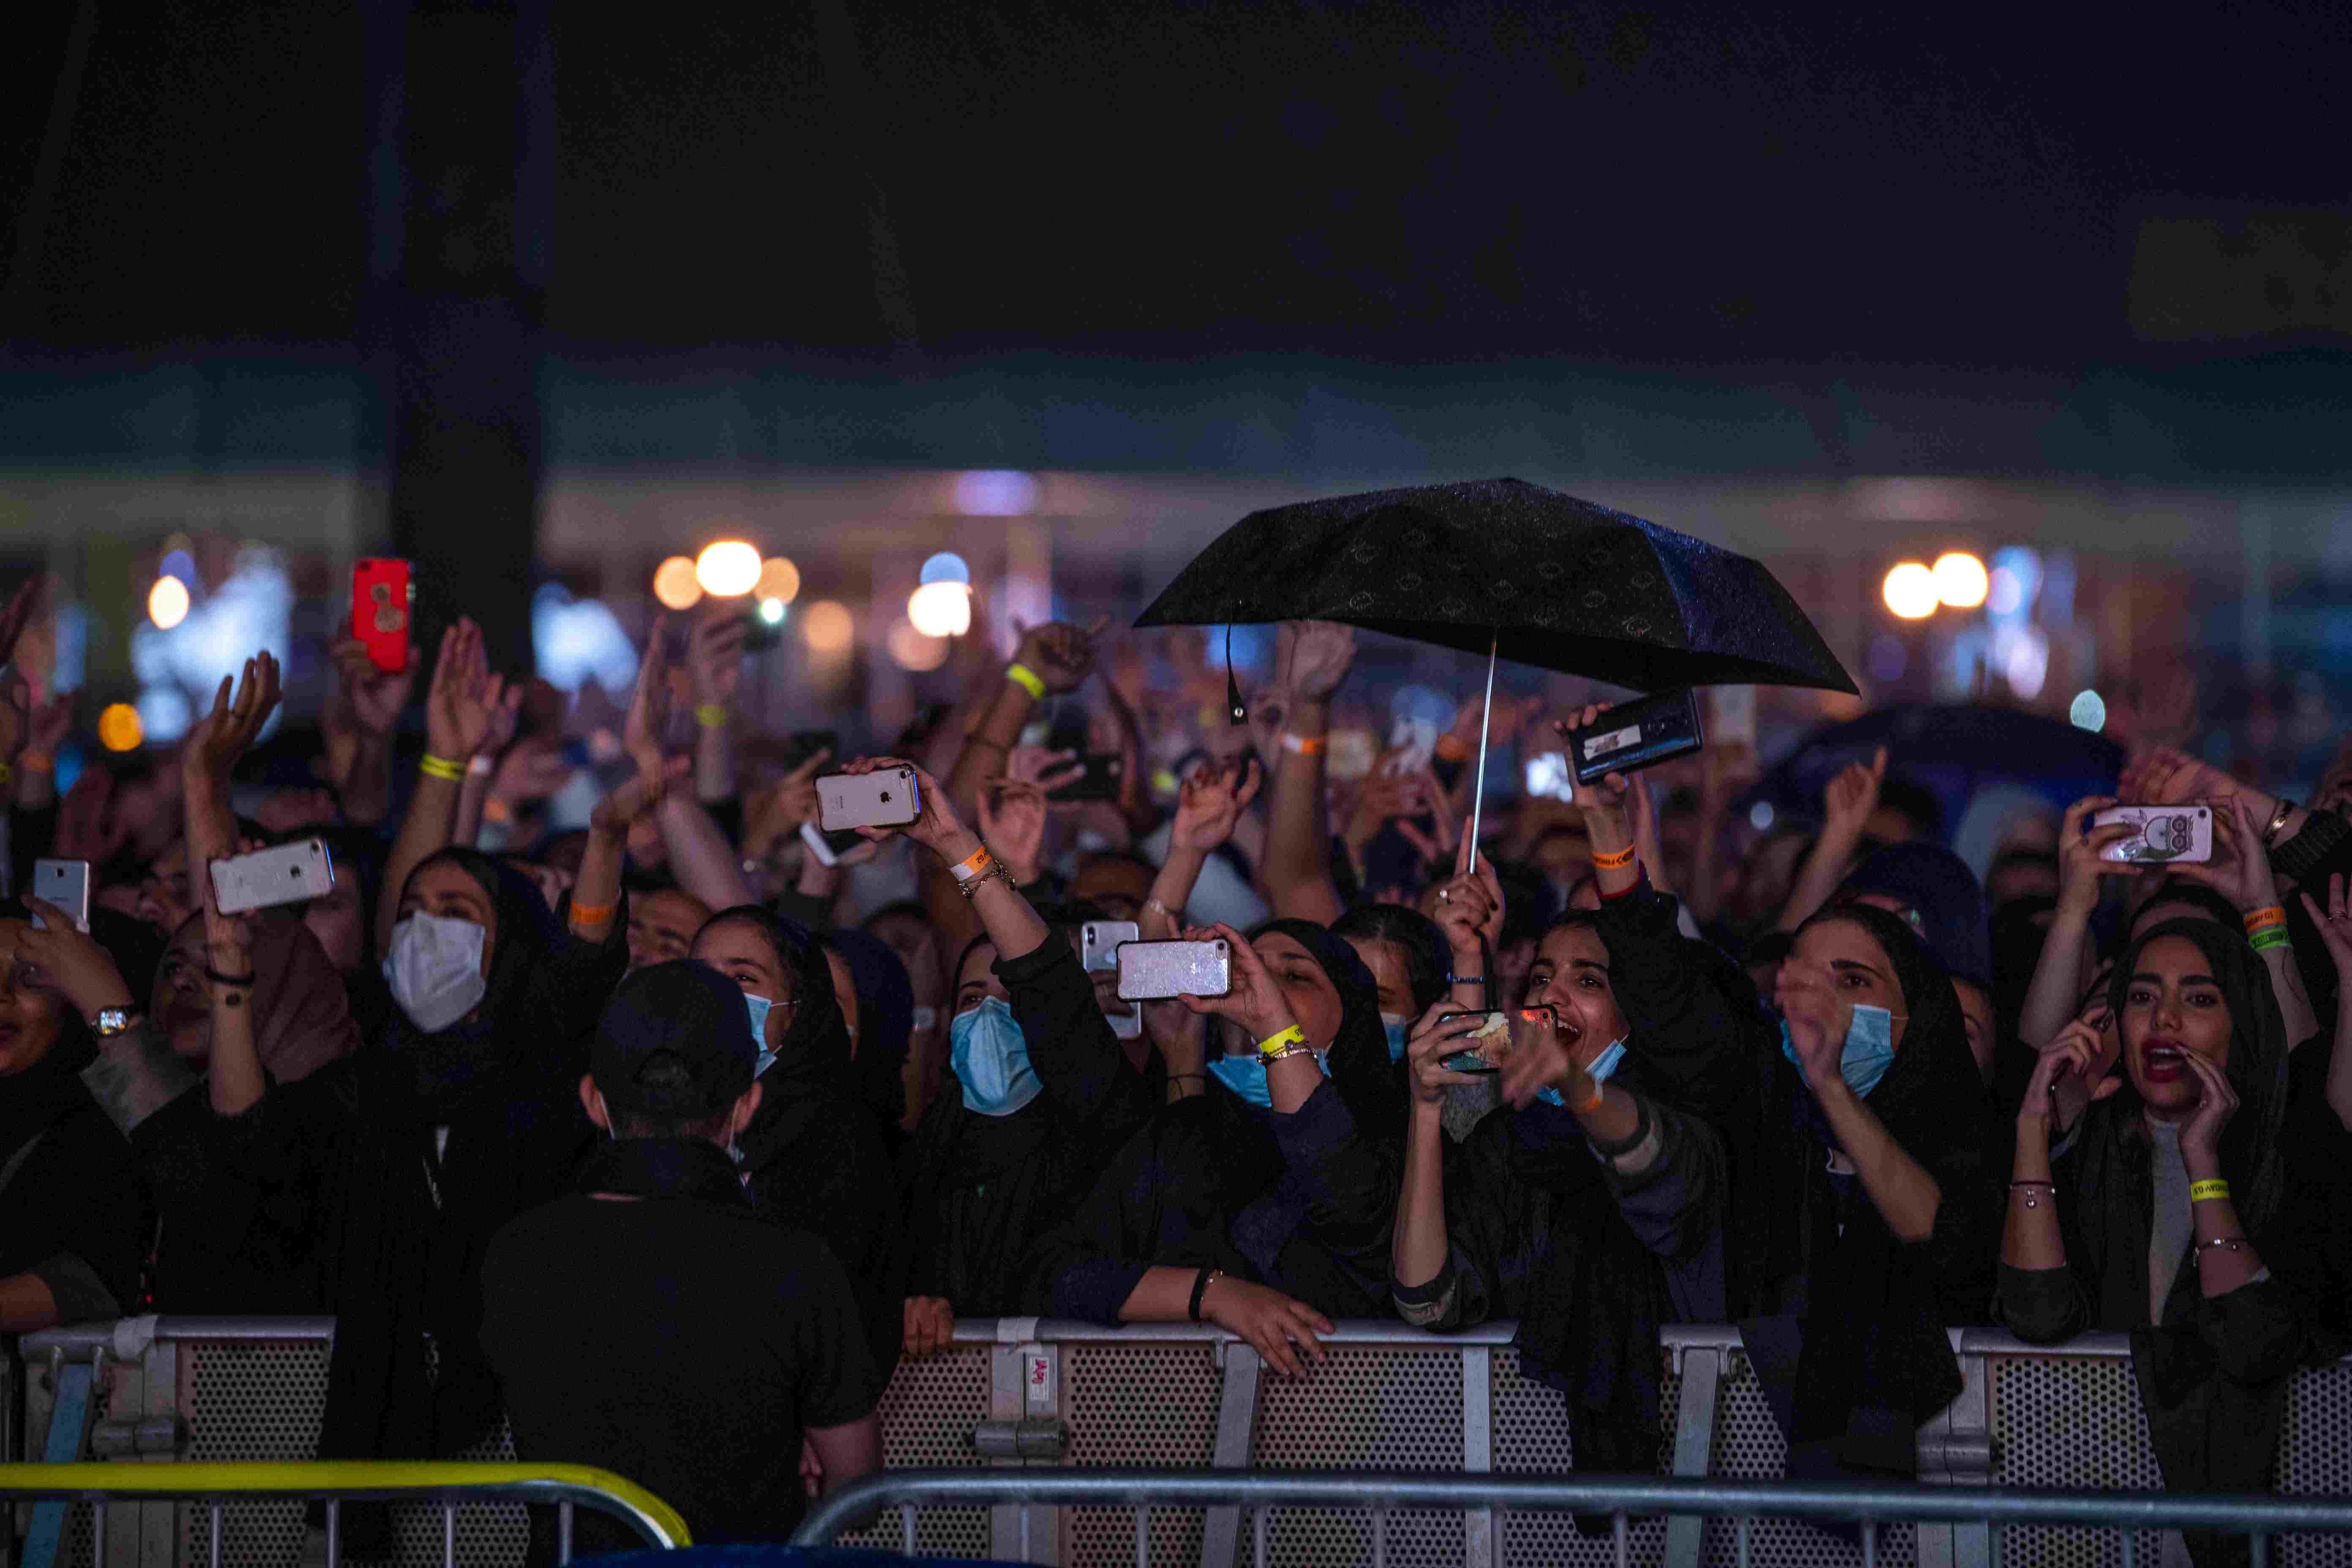 Fans rushed to the front of the stage despite the rain